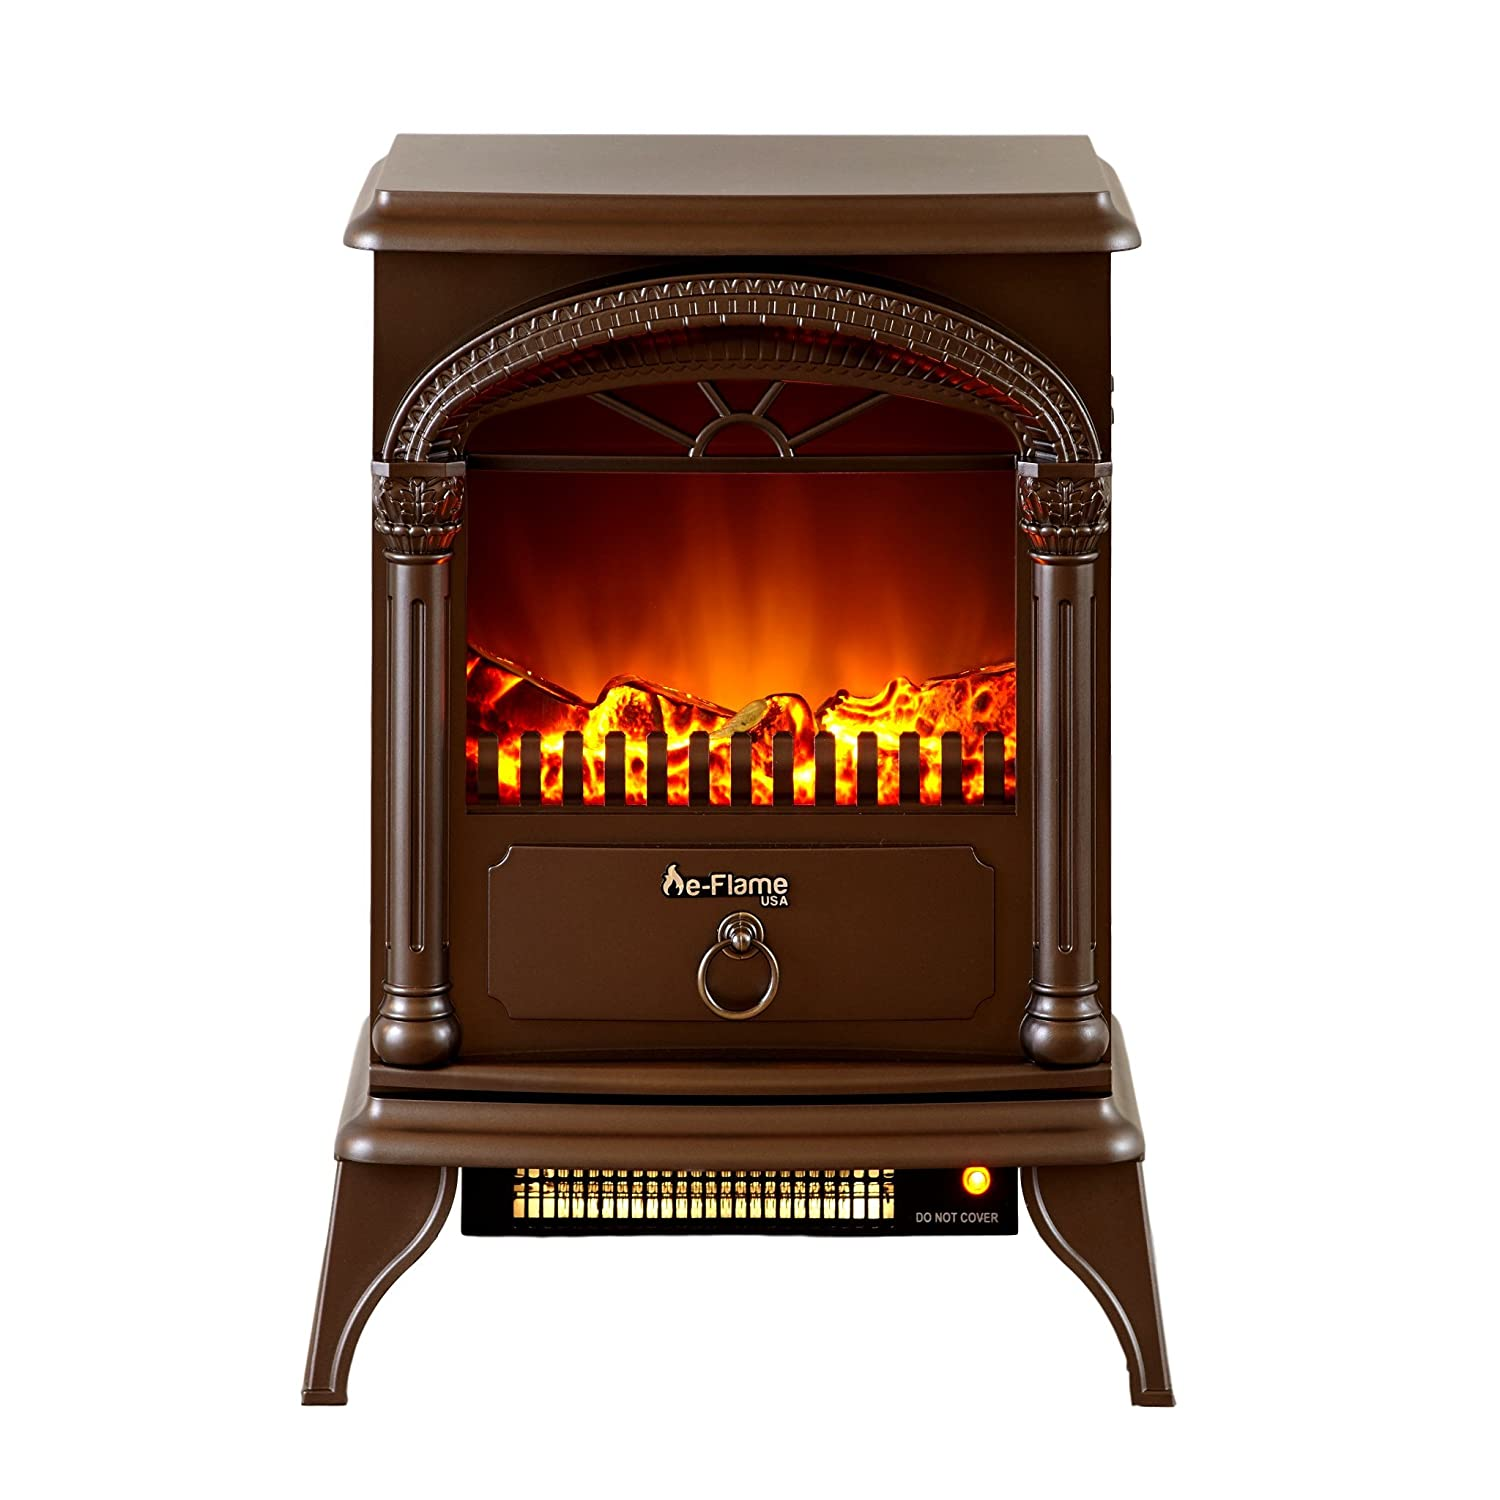 e-Flame USA Hamilton Portable Electric Fireplace Stove (Matte Black) - This 22-inch Tall Freestanding Fireplace Features Heater Fan Settings Realistic Brightly Burning Fire Logs EF-BLT04